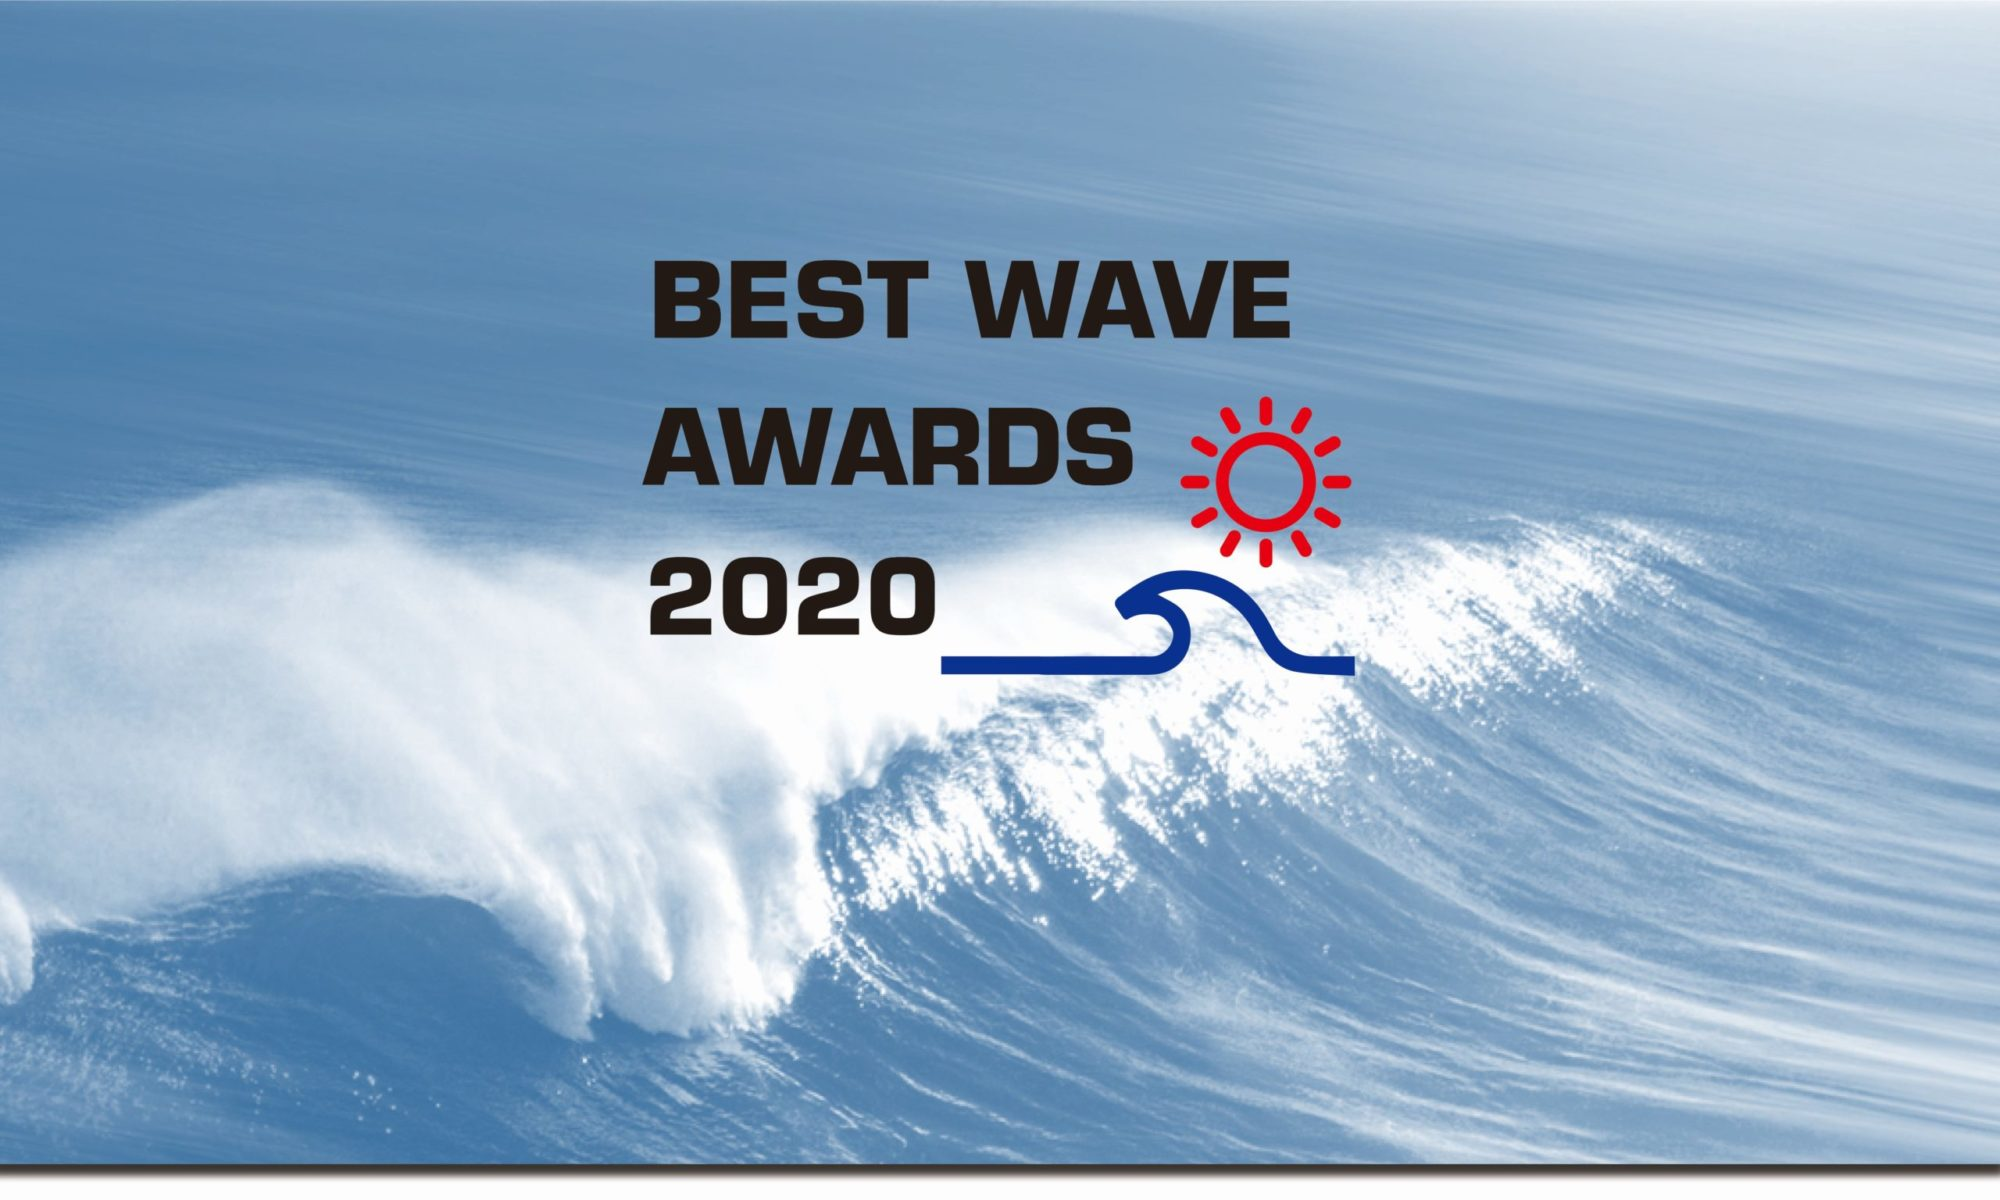 BEST WAVE AWARDS 2020